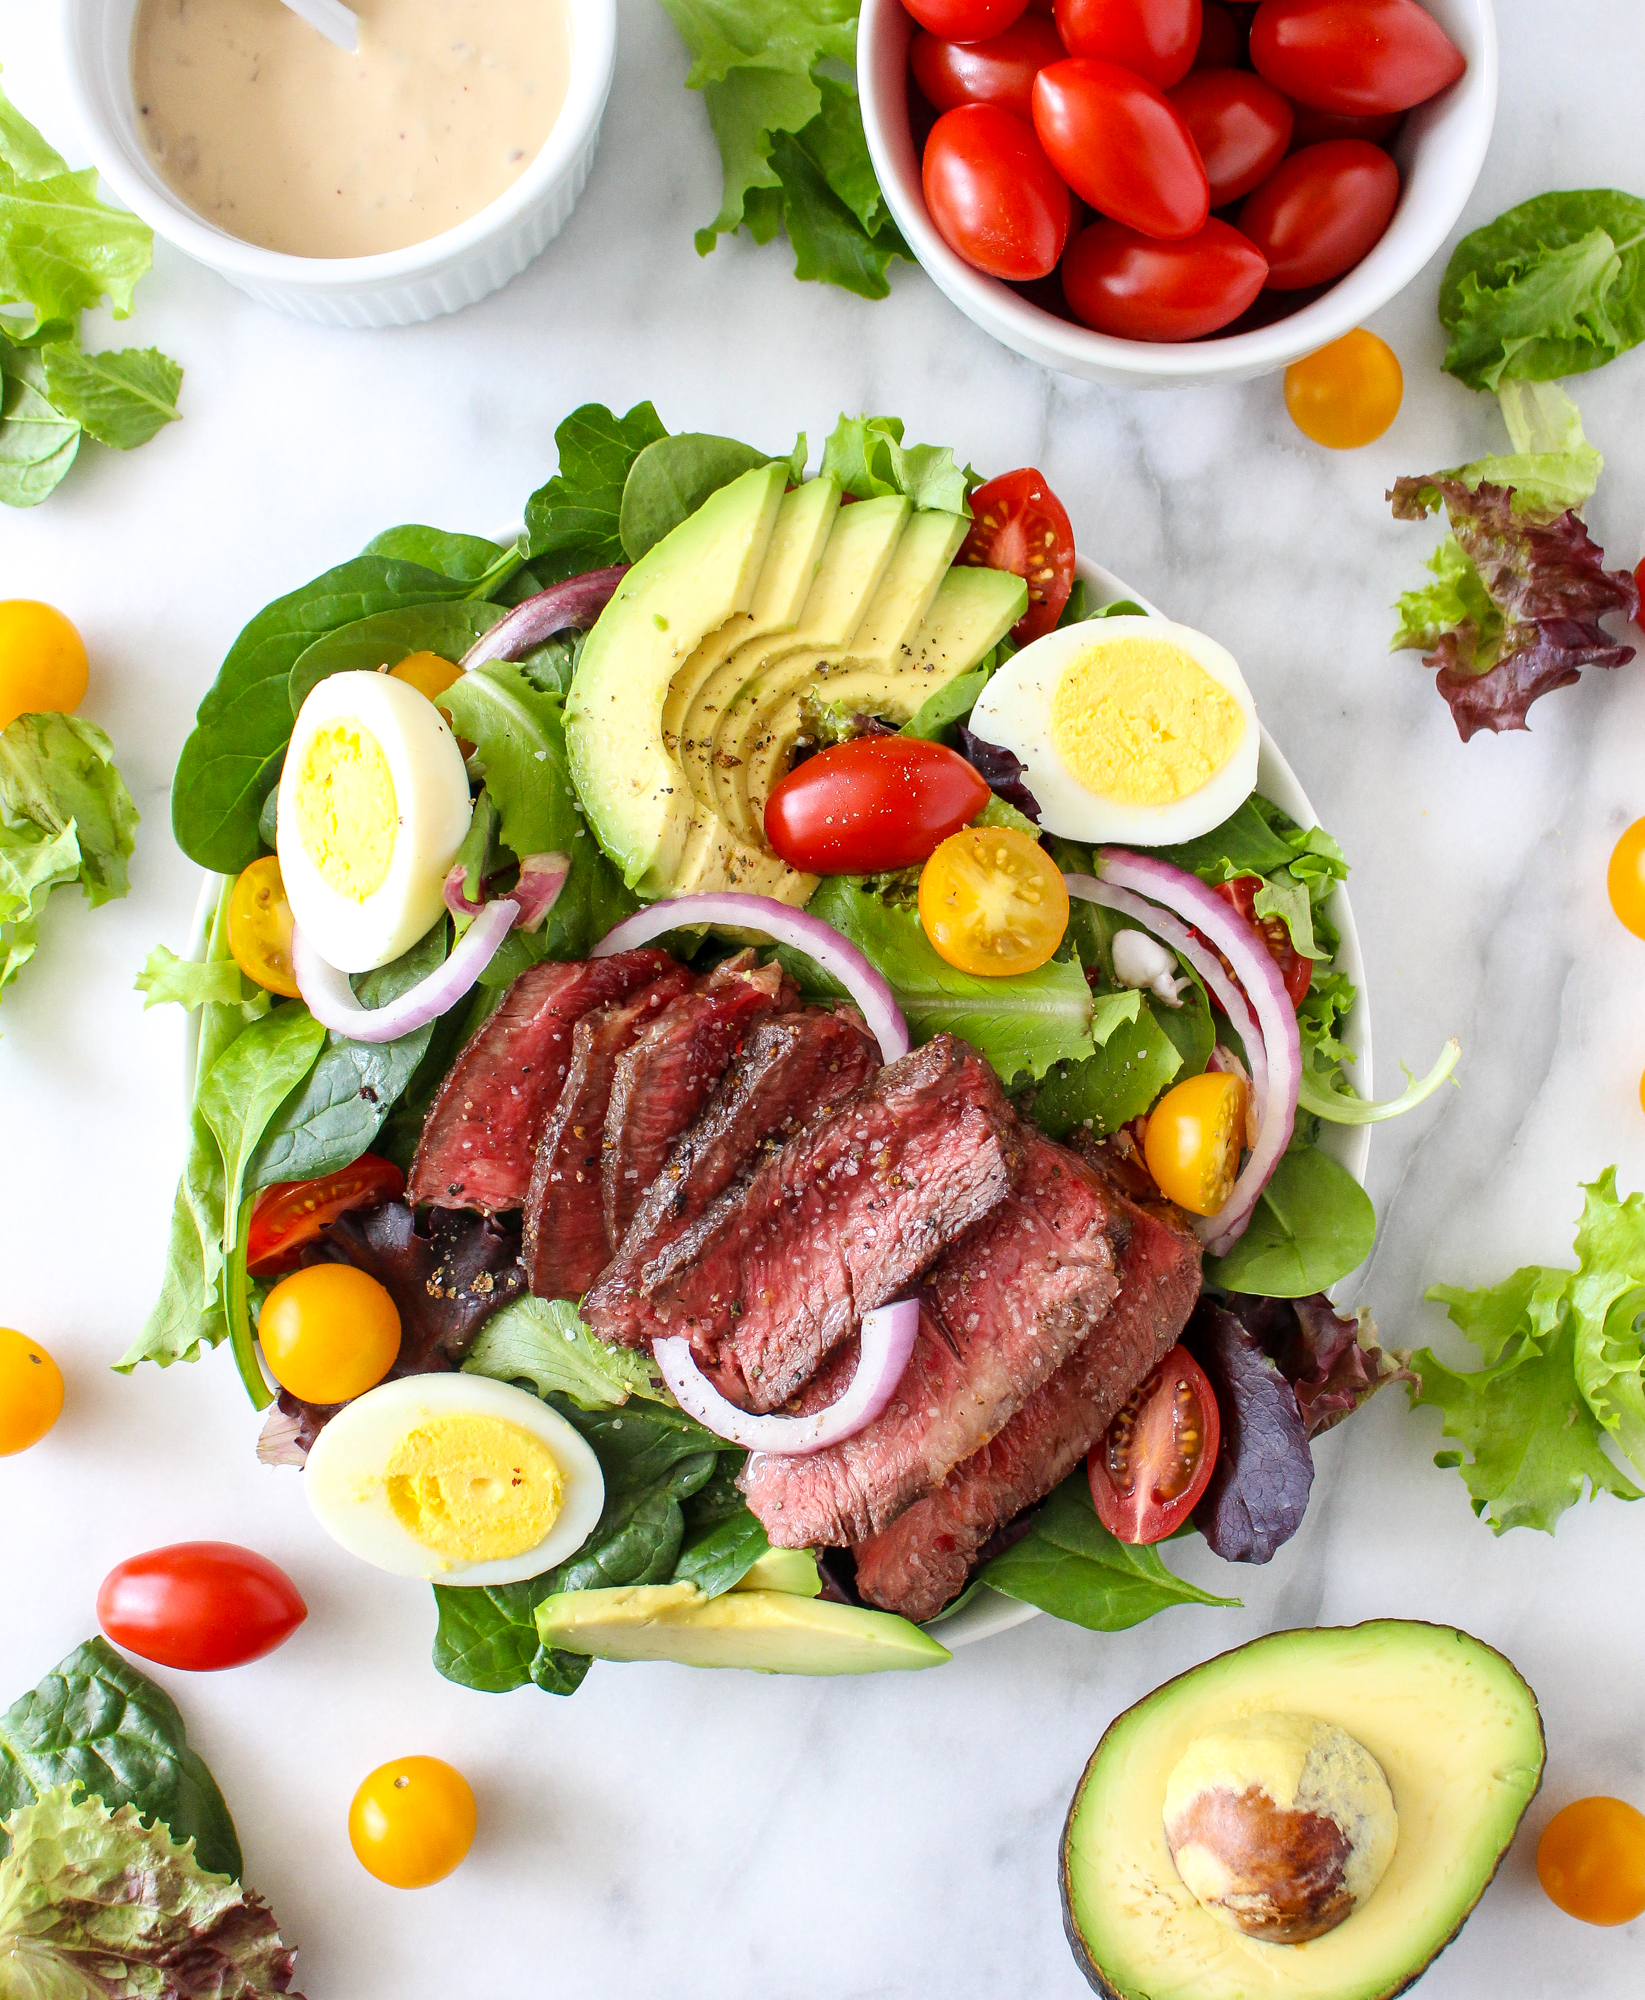 Steak Cobb Salad with Caramelized Onion-Yogurt Dressing